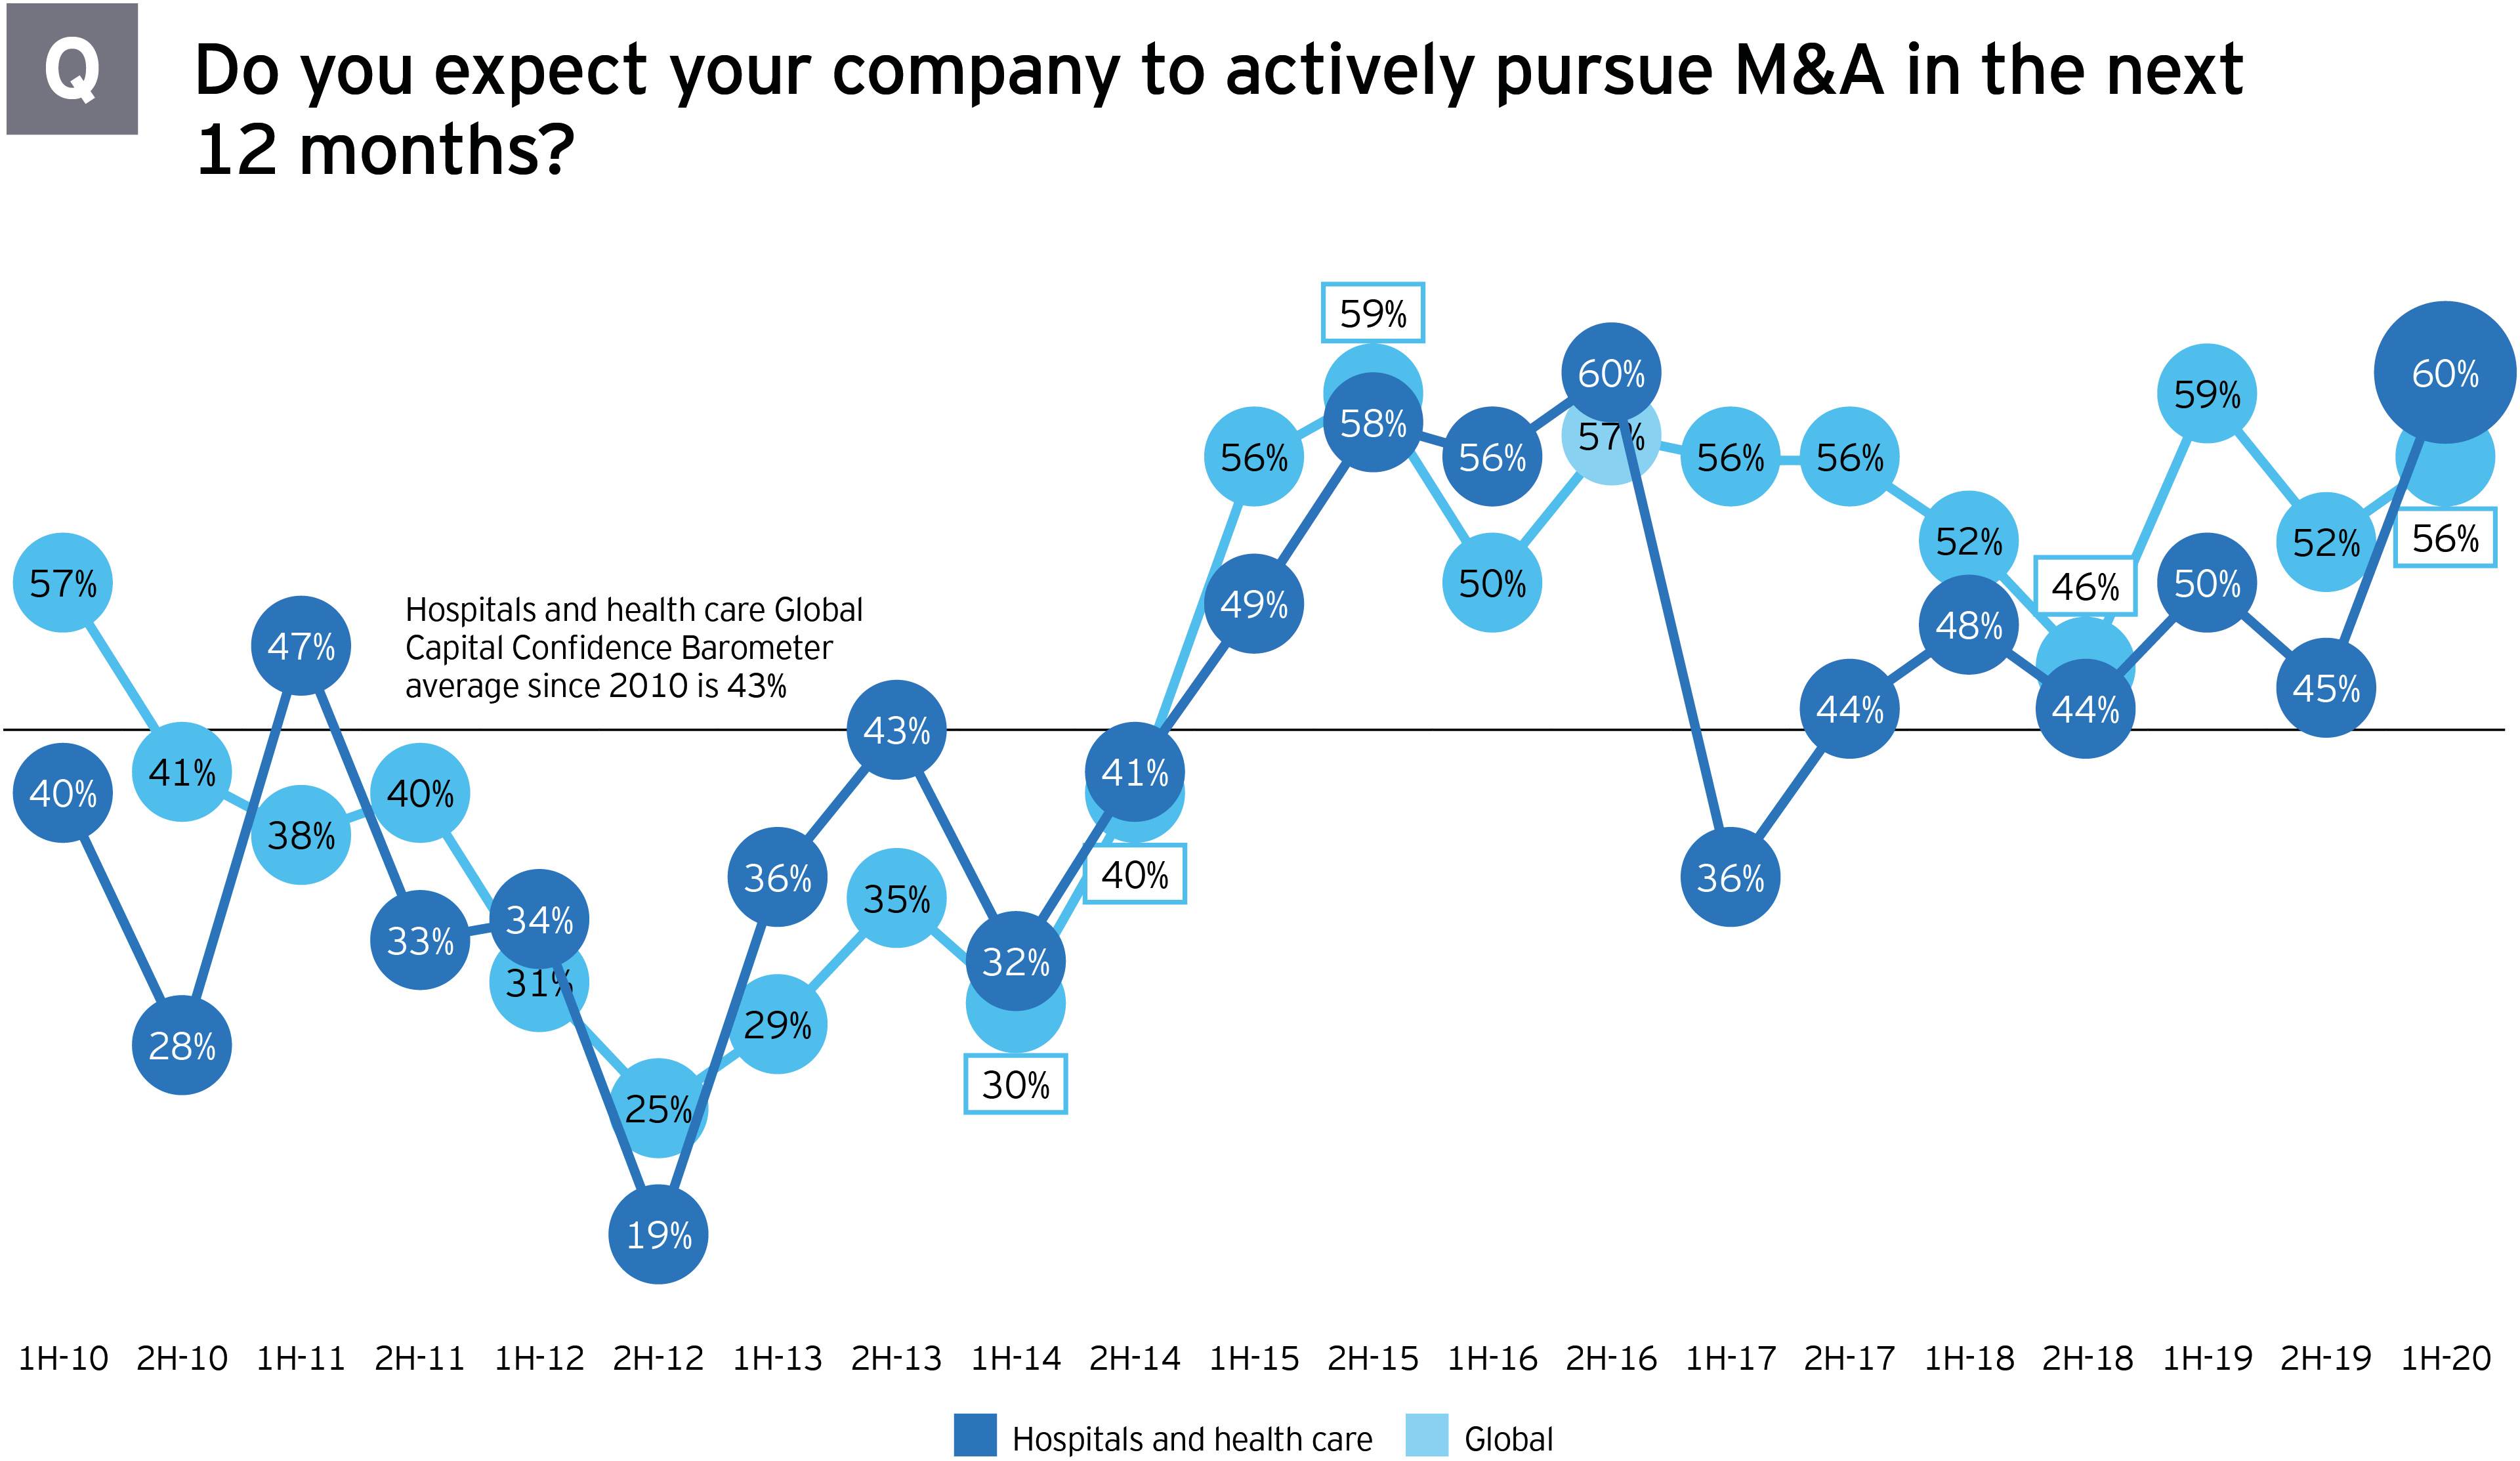 M&A survey intent to actively pursue mergers and acquisitions in next 12 months